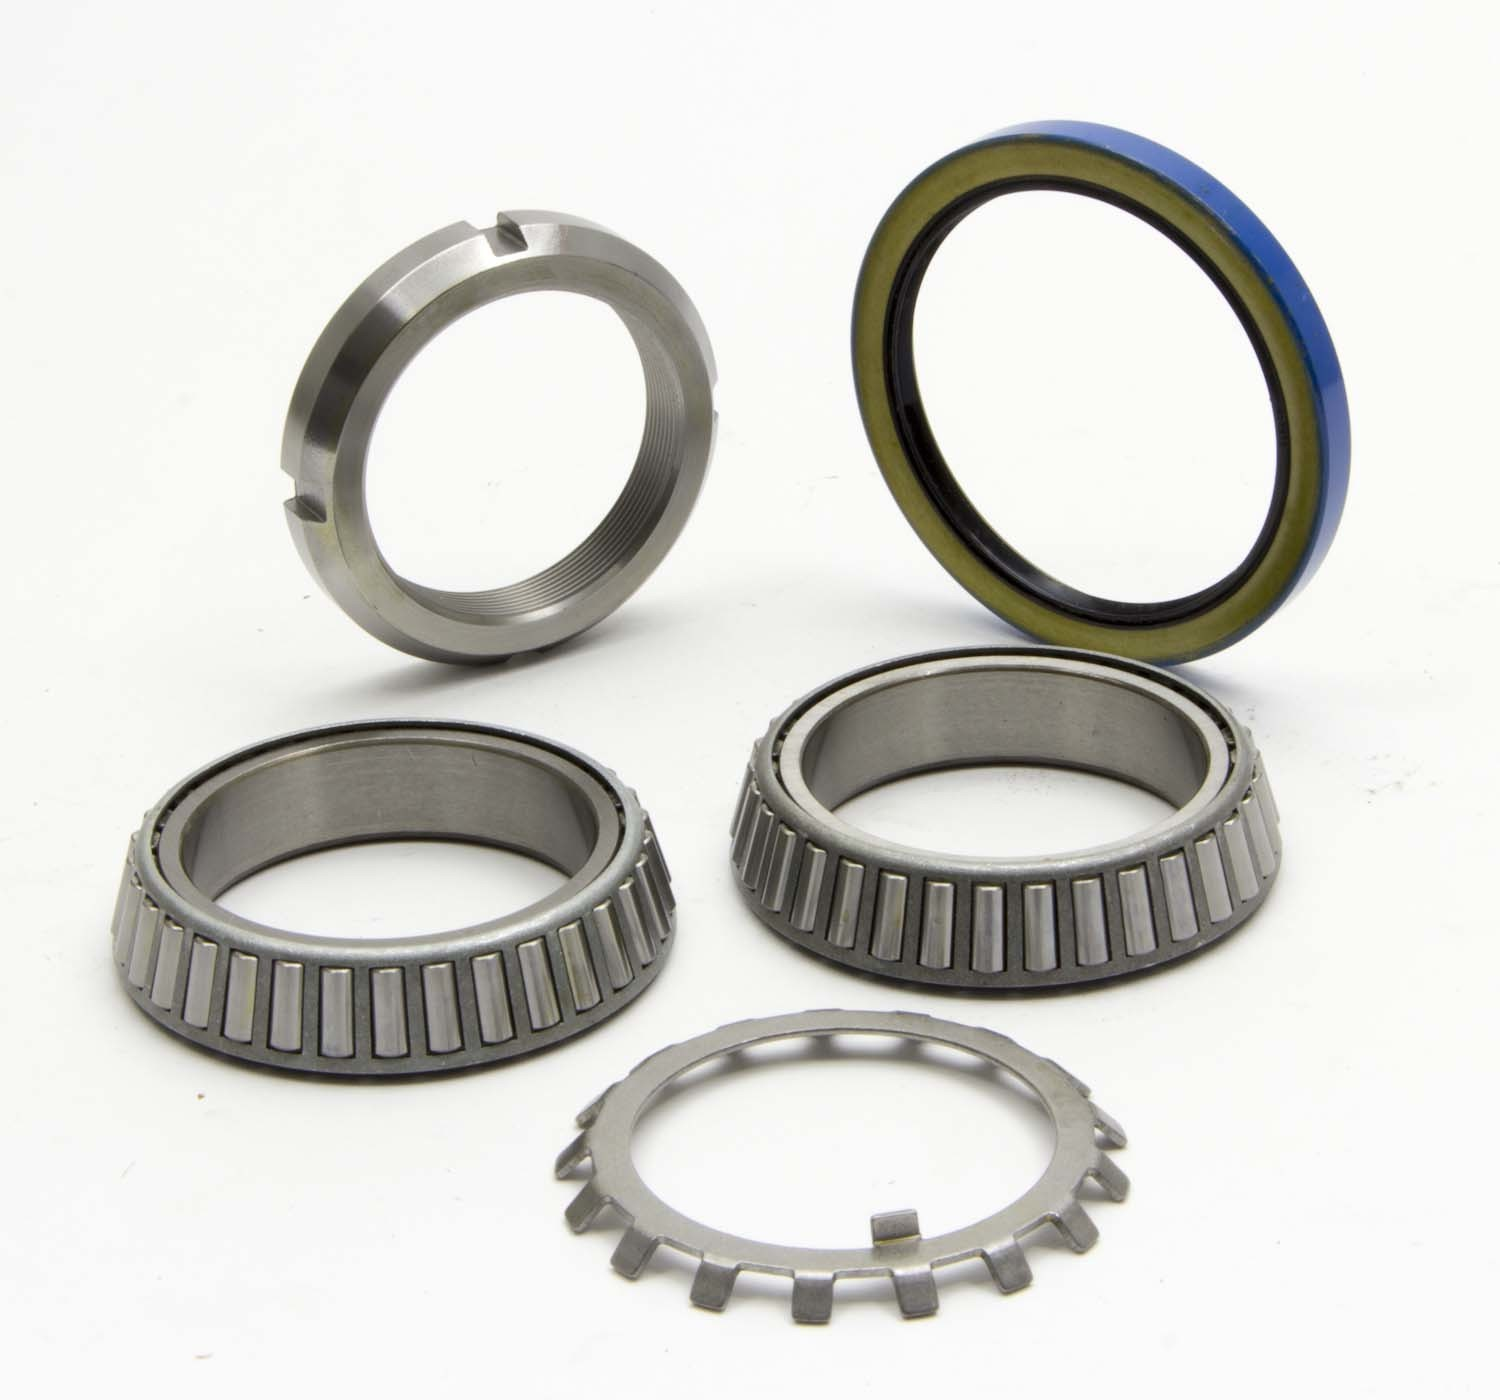 AFCO Racing Products 10355 Wheel Bearing Kit, Bearings/Seal/Nuts/Washer, Gn/Super Speedway/Howe Hubs, Lock Nut, Kit